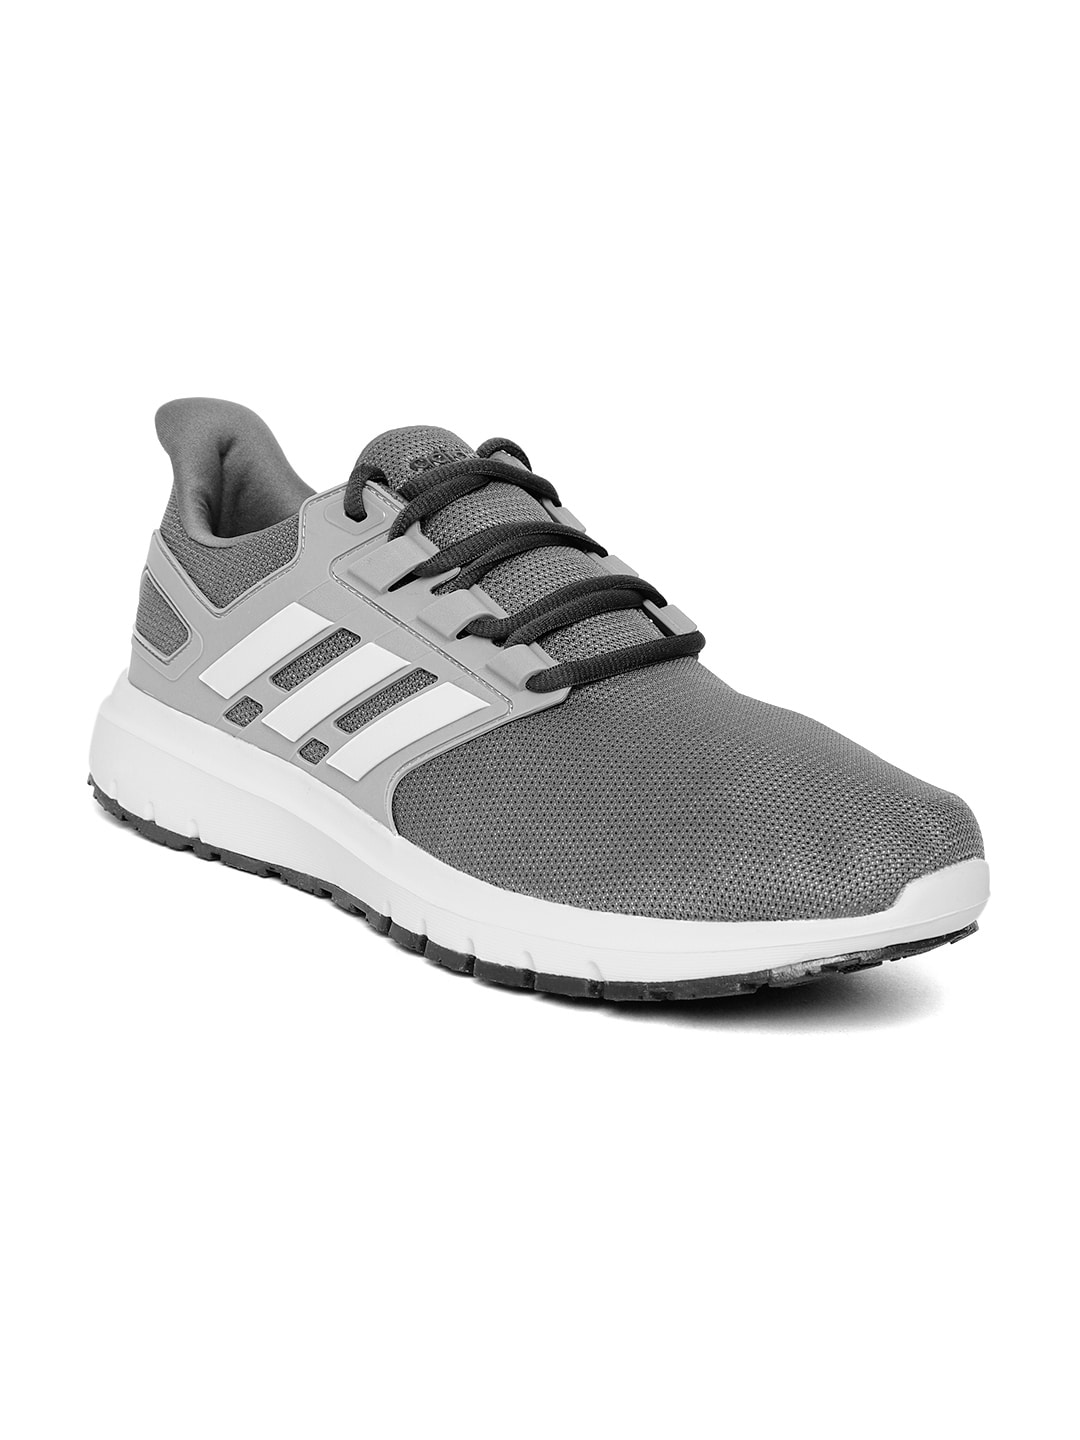 san francisco 54ce2 27e74 Sports Shoes - Buy Sport Shoes For Men  Women Online  Myntra